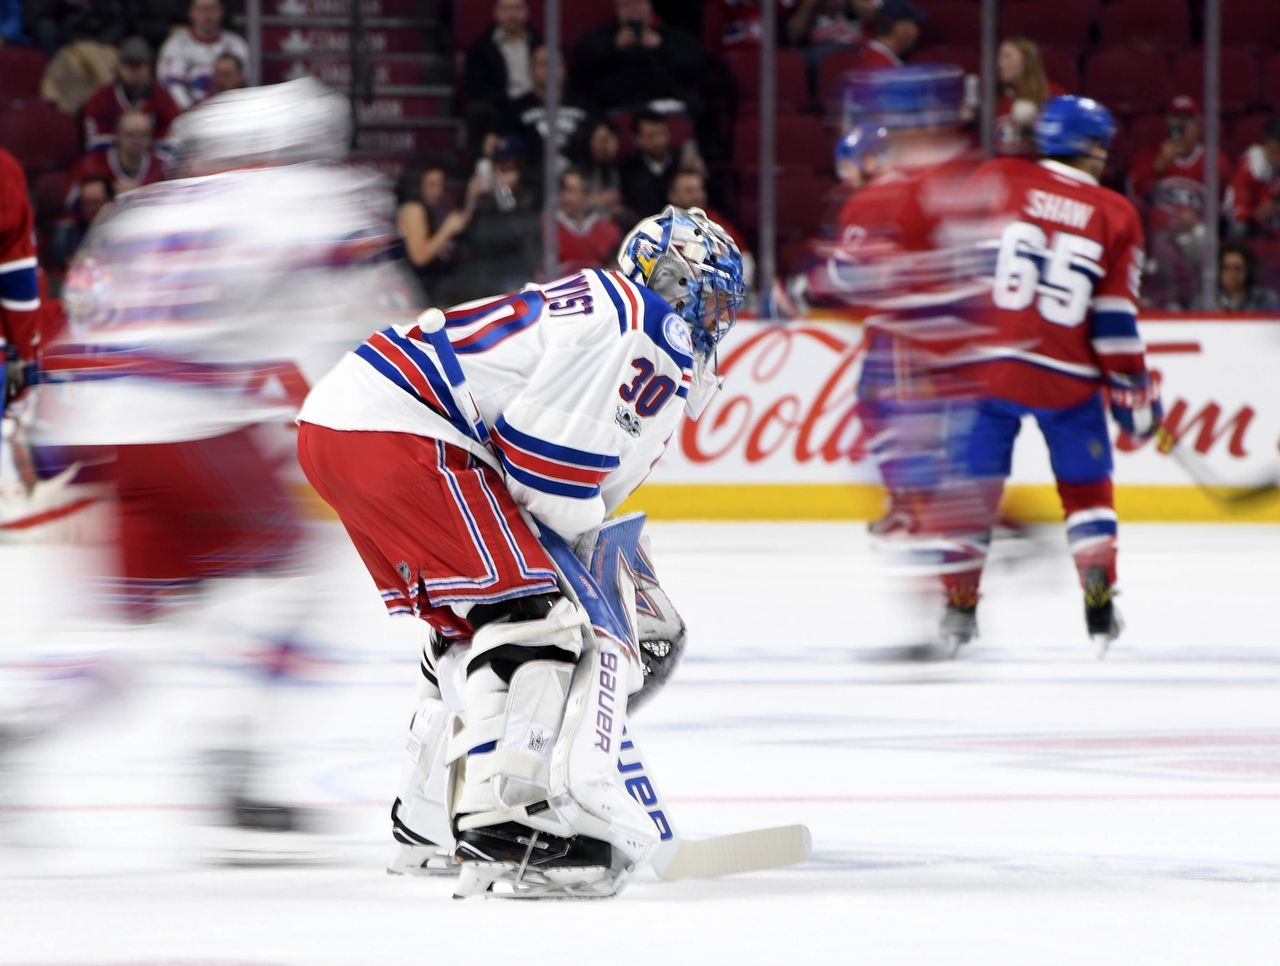 Cropped 2017 04 12t225535z 821846501 nocid rtrmadp 3 nhl stanley cup playoffs new york rangers at montreal canadiens